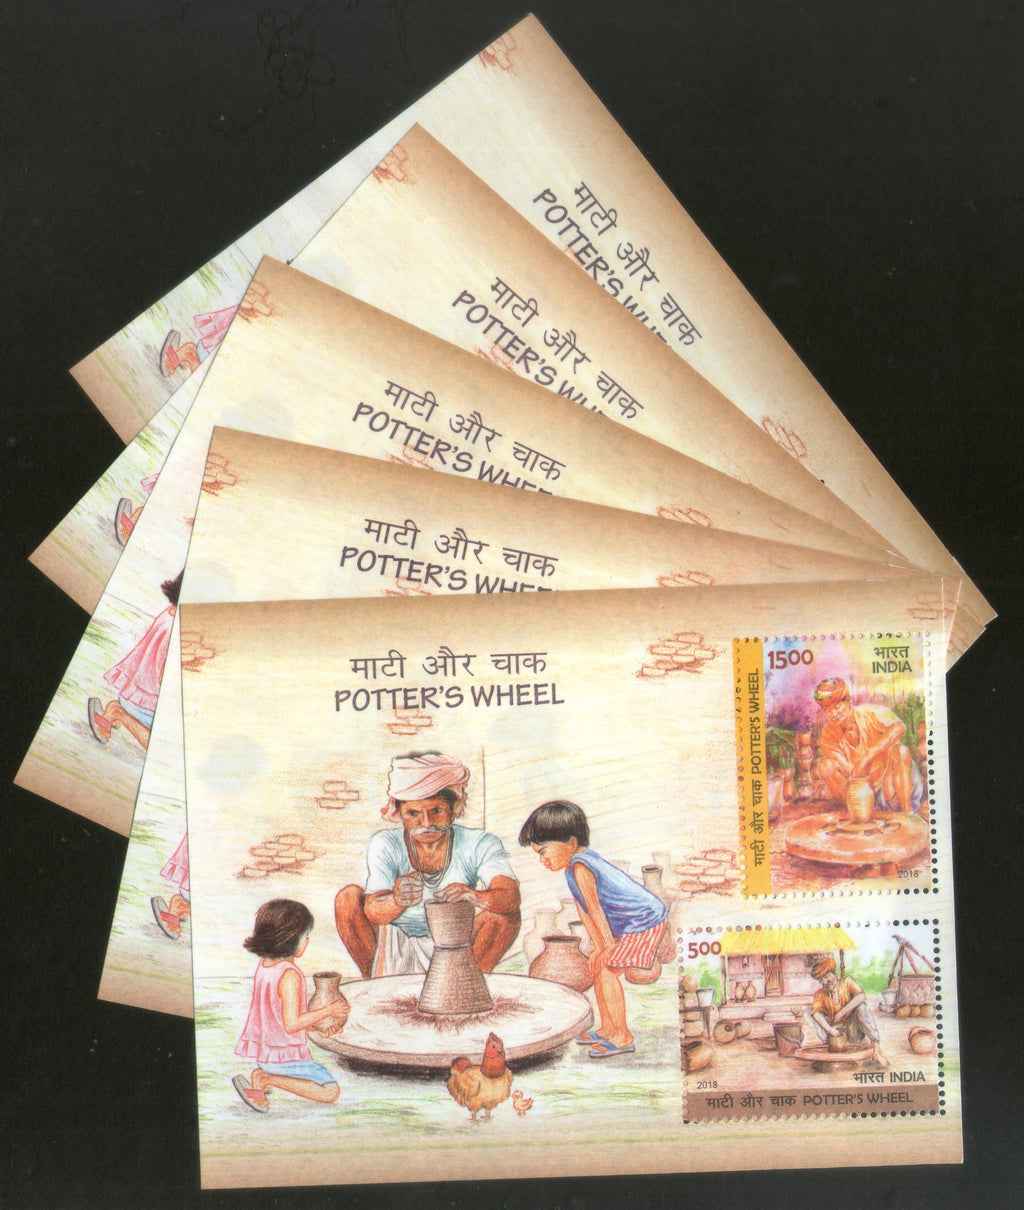 India 2018 Potter's Wheel Handicraft Art Pottery M/s x 5 MNH - Phil India Stamps